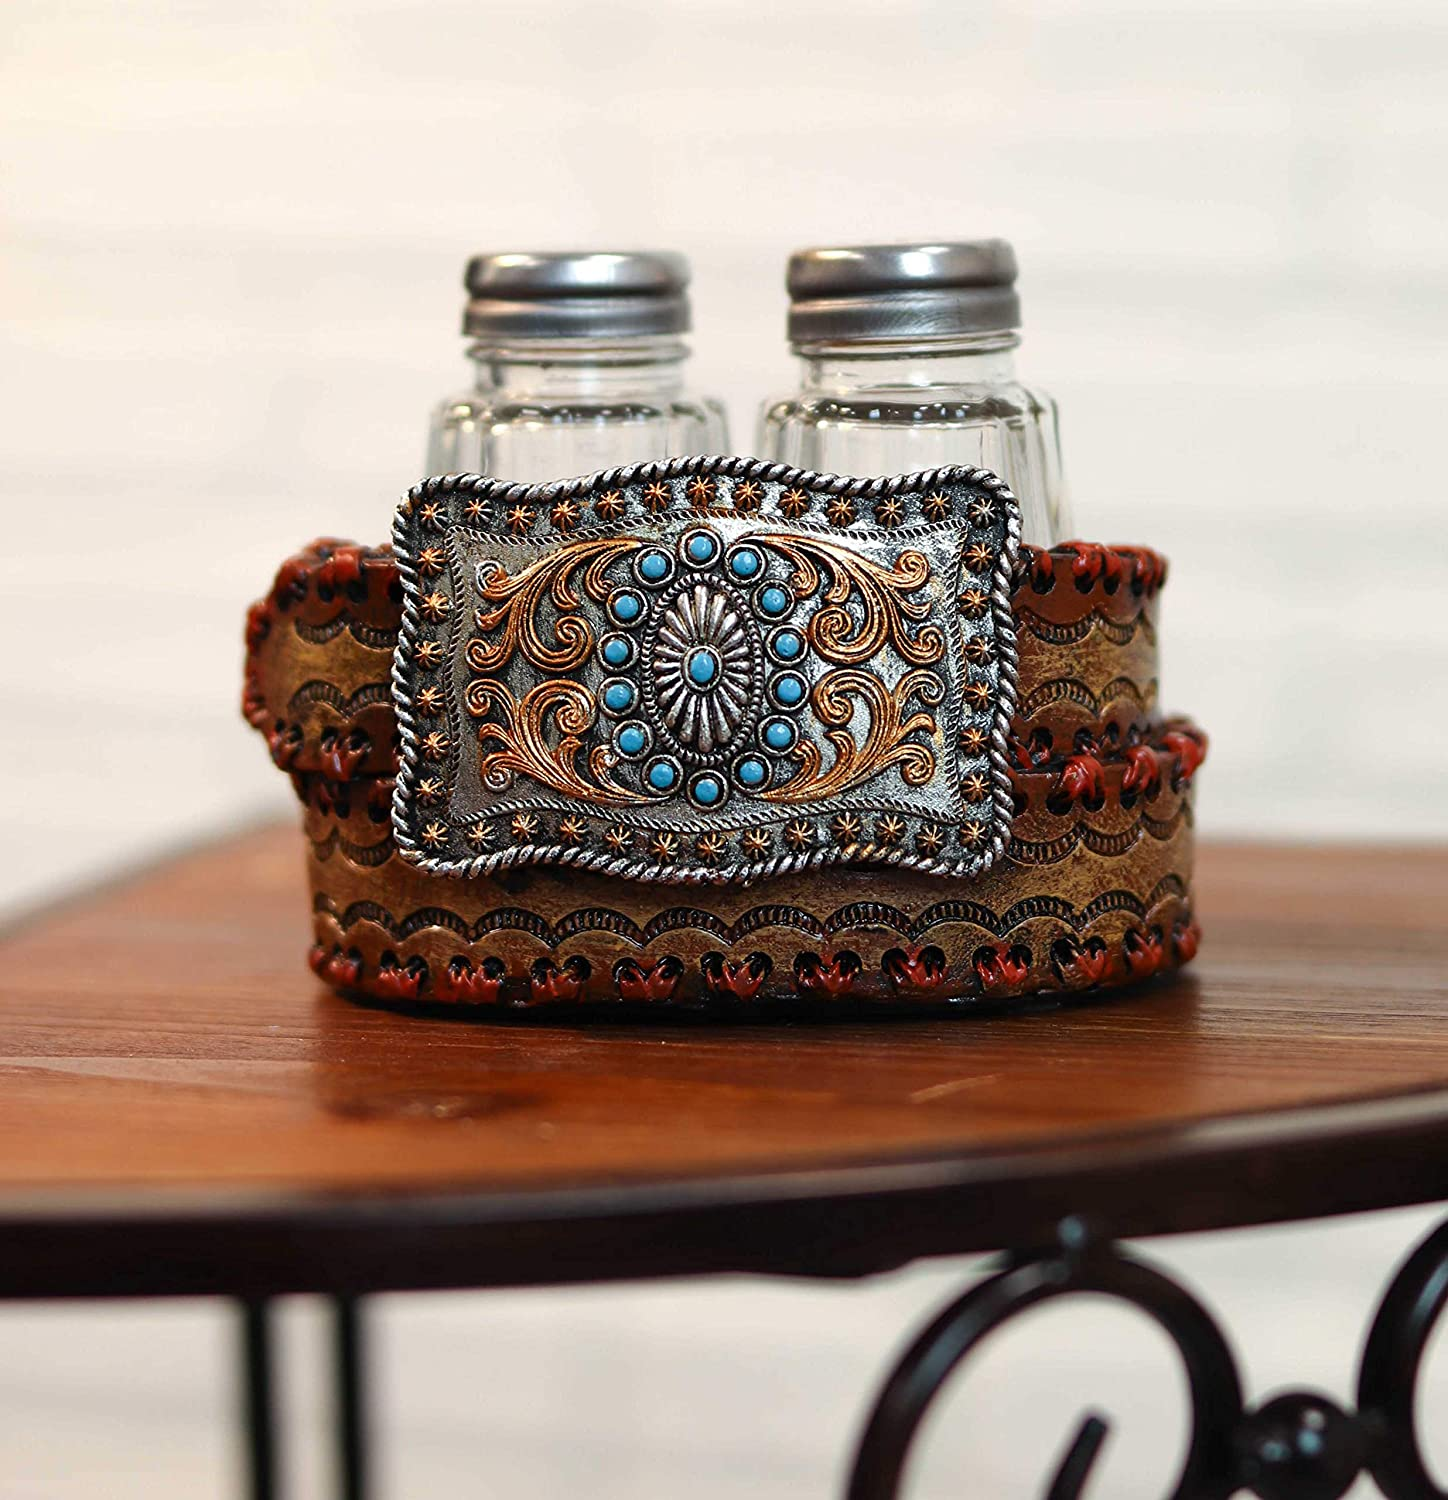 Ebros Western Turquoise Sun With Floral Lace On Belt Buckle And Coiled Strap Decorative Salt And Pepper Shakers Set Holder Resin Figurine With 2 Glass Shakers Southwestern Native American Themed Decor